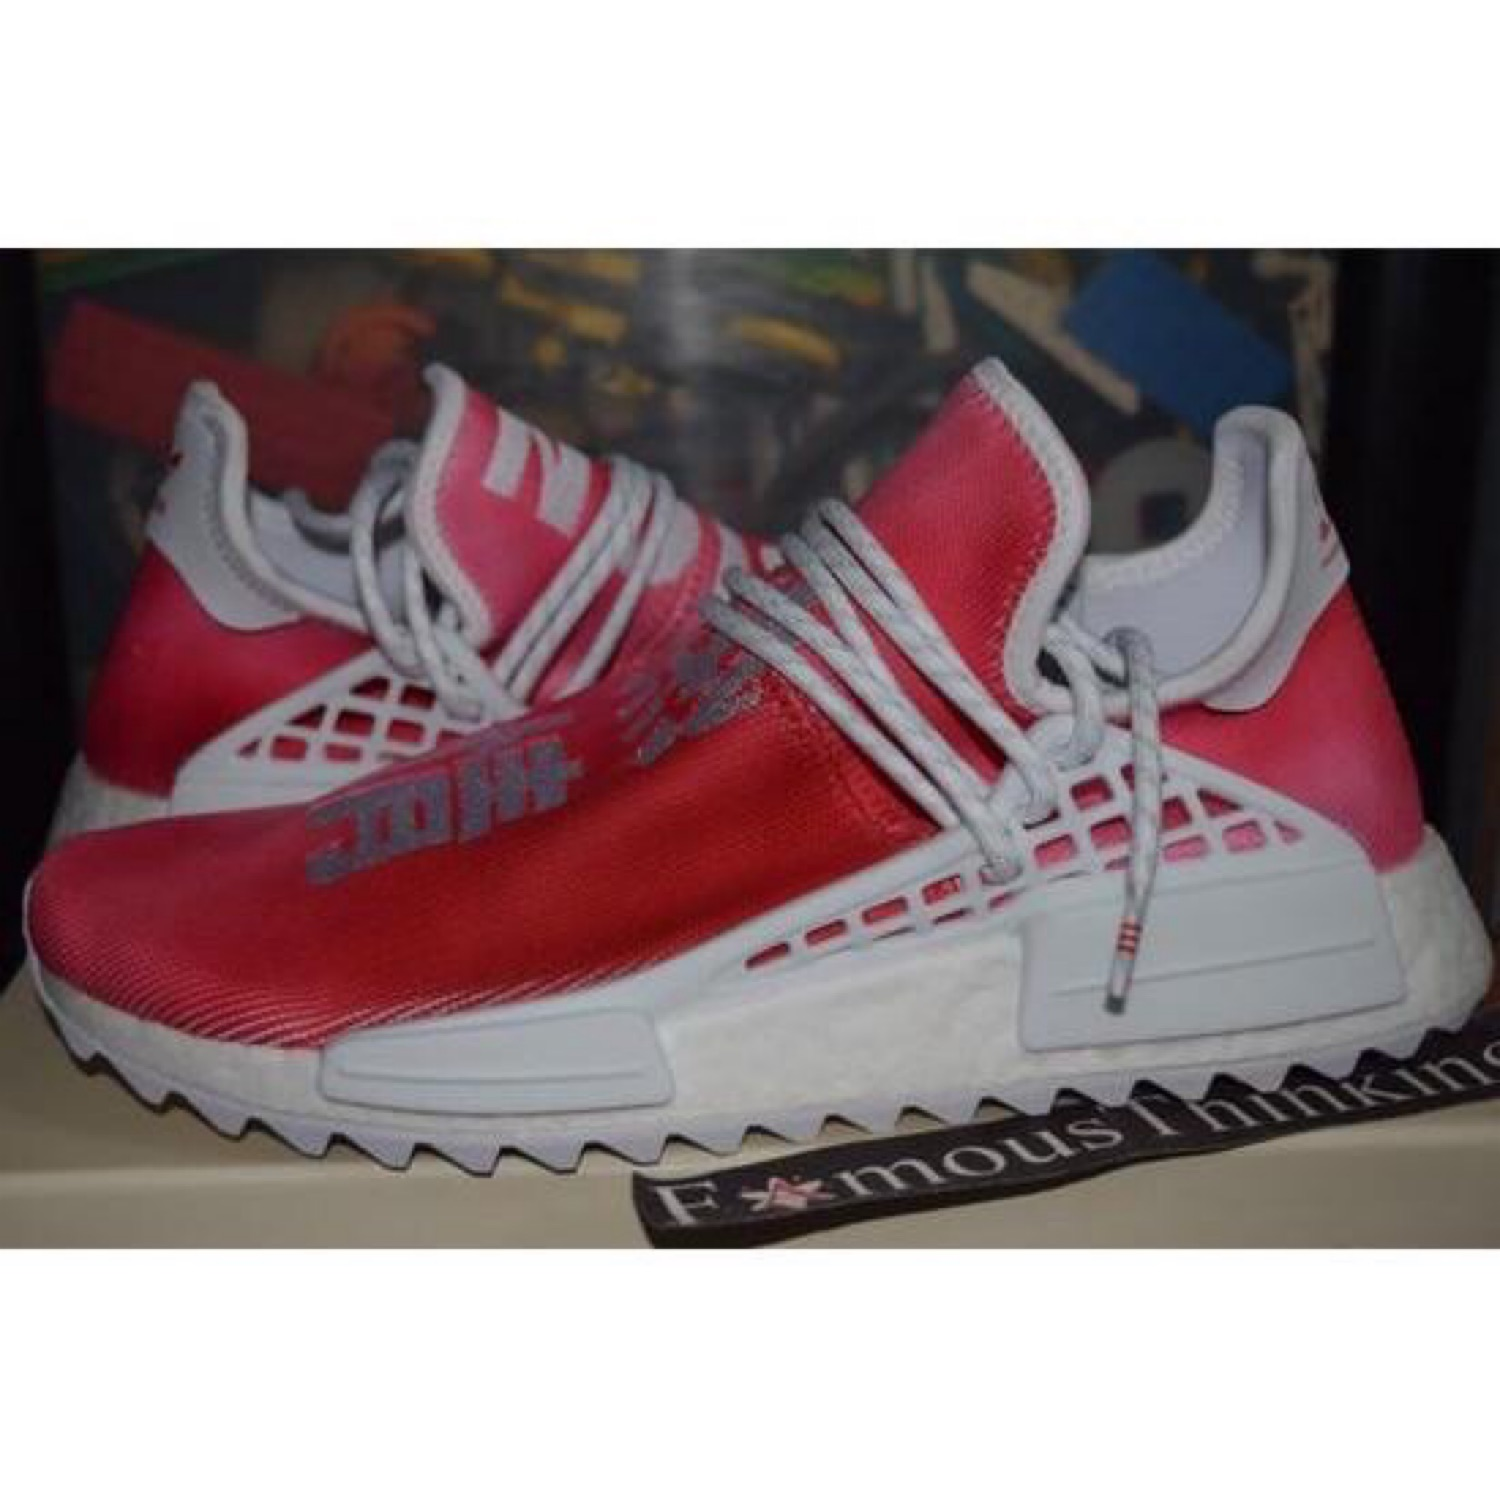 low priced 2bc93 eaaec Adidas Human Race Nmd Pharrell China Red